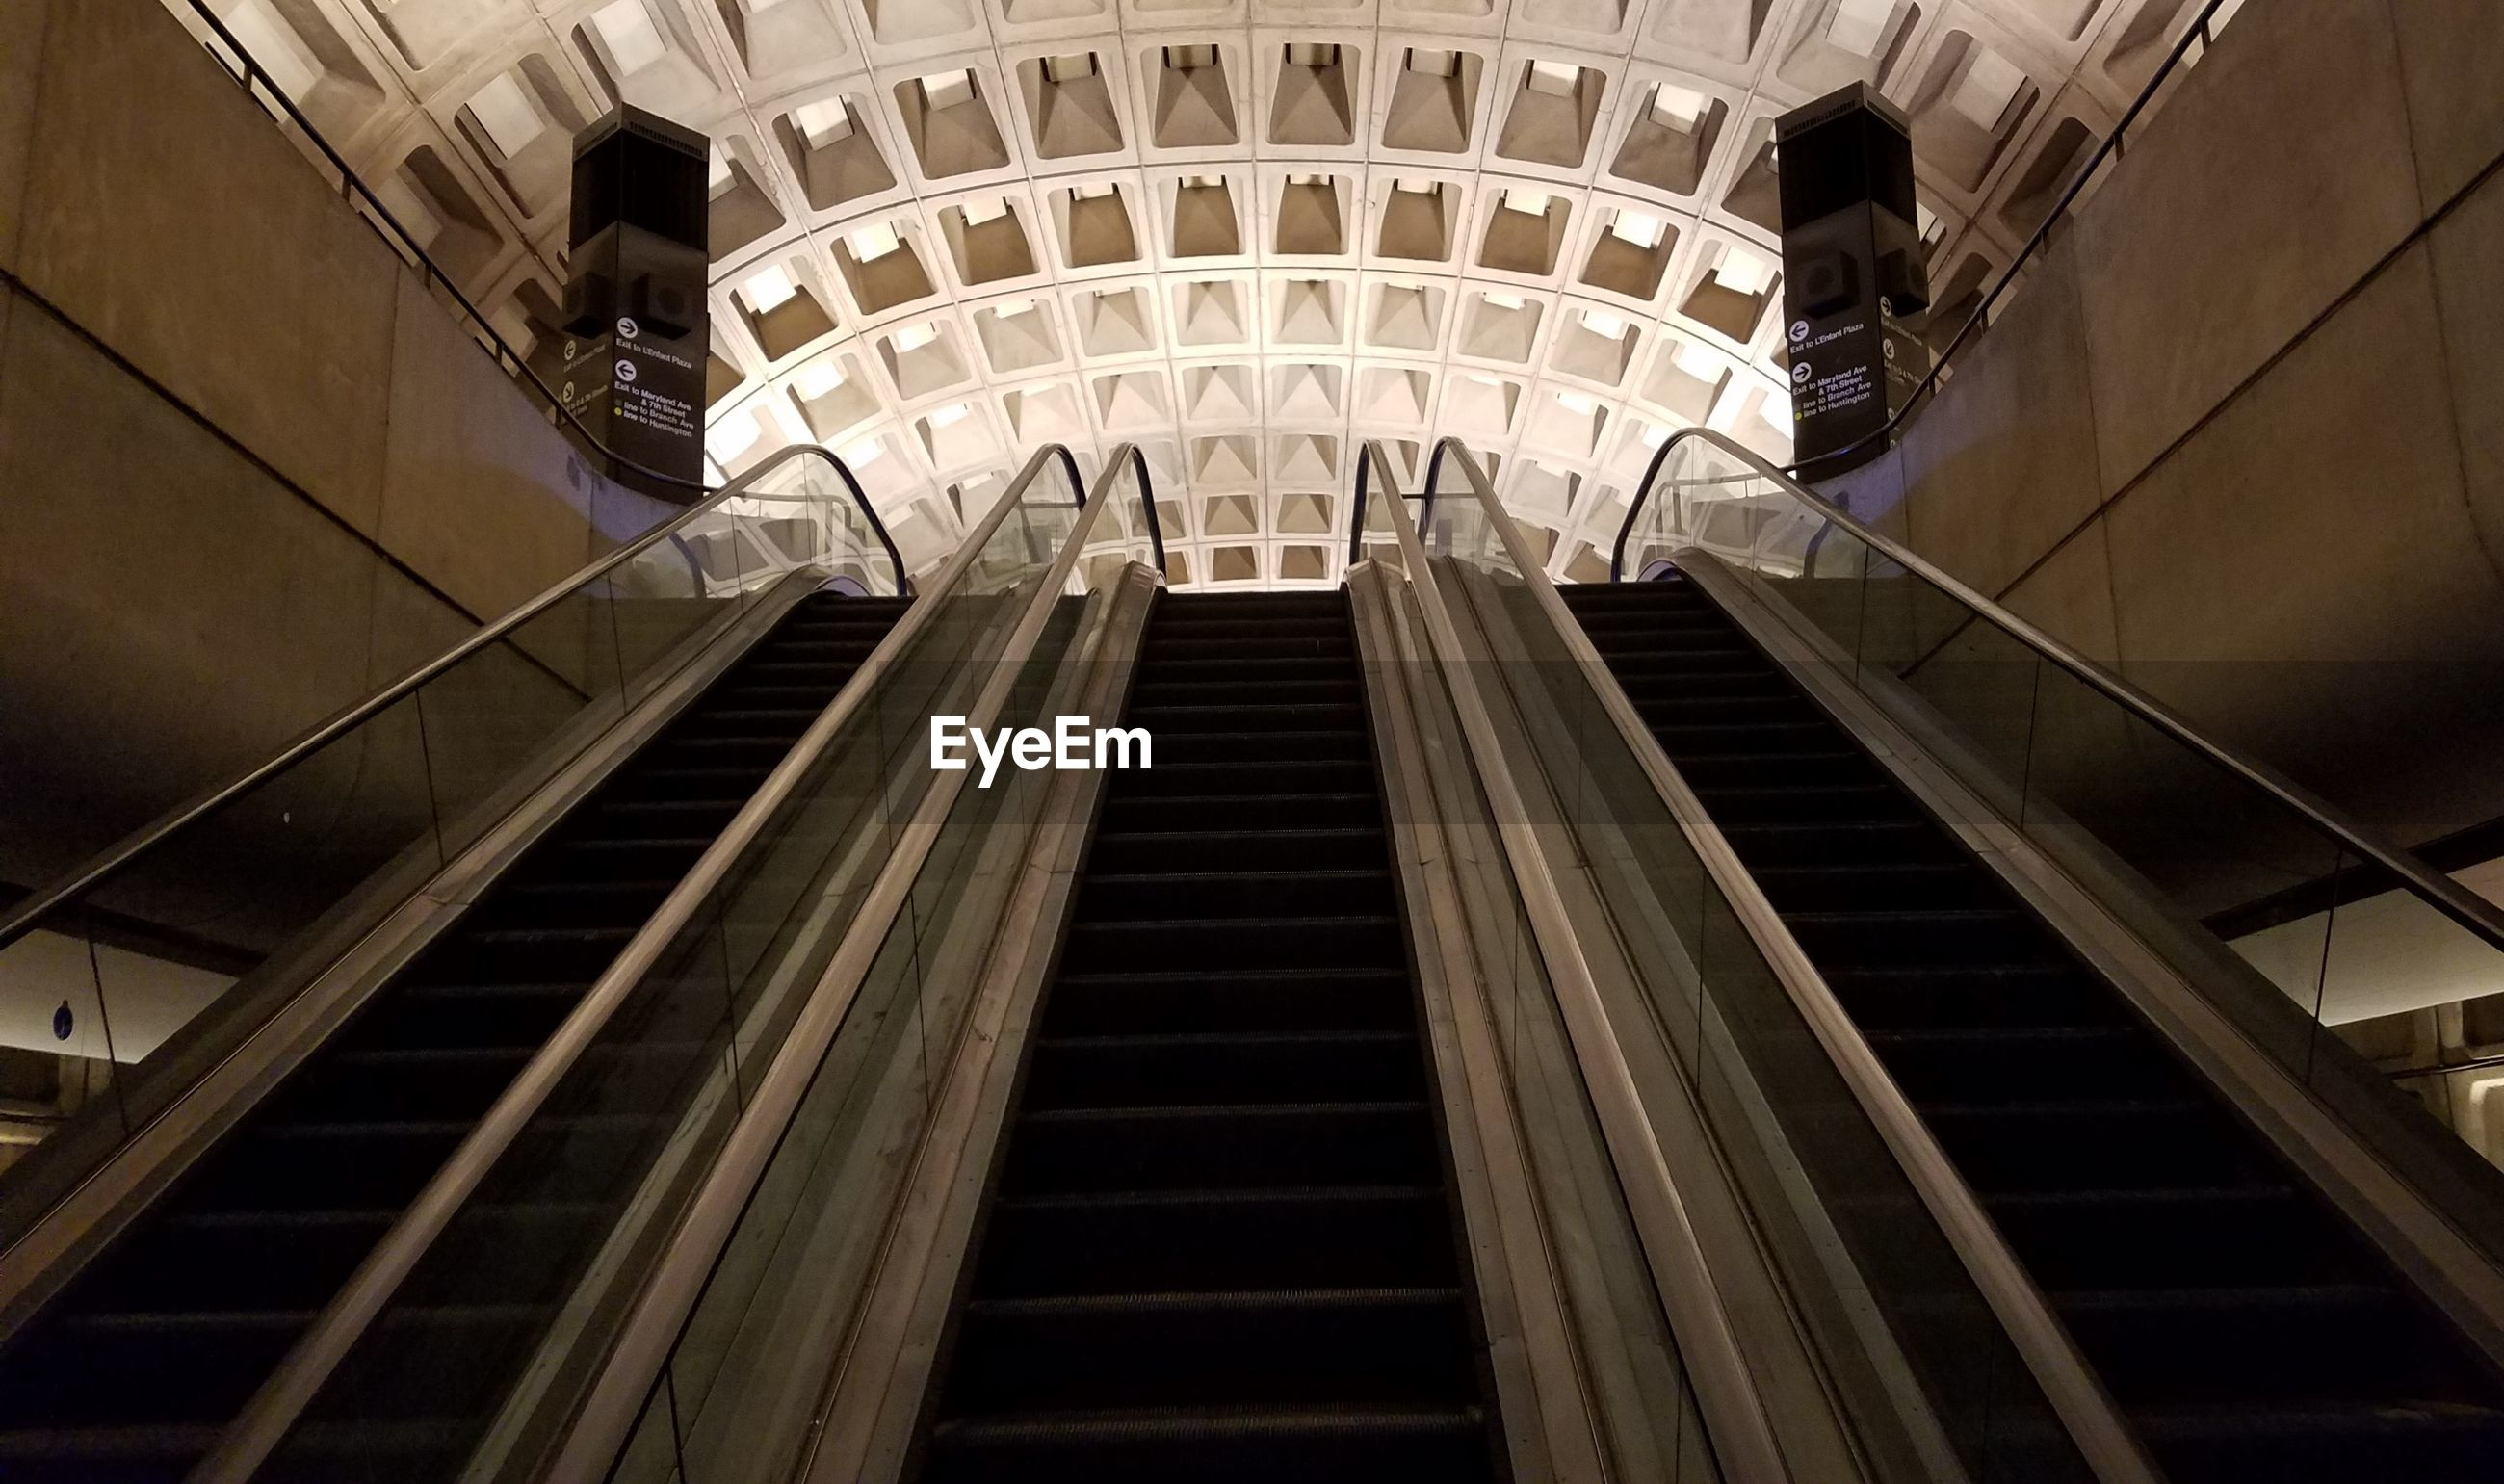 LOW ANGLE VIEW OF ESCALATOR IN CITY